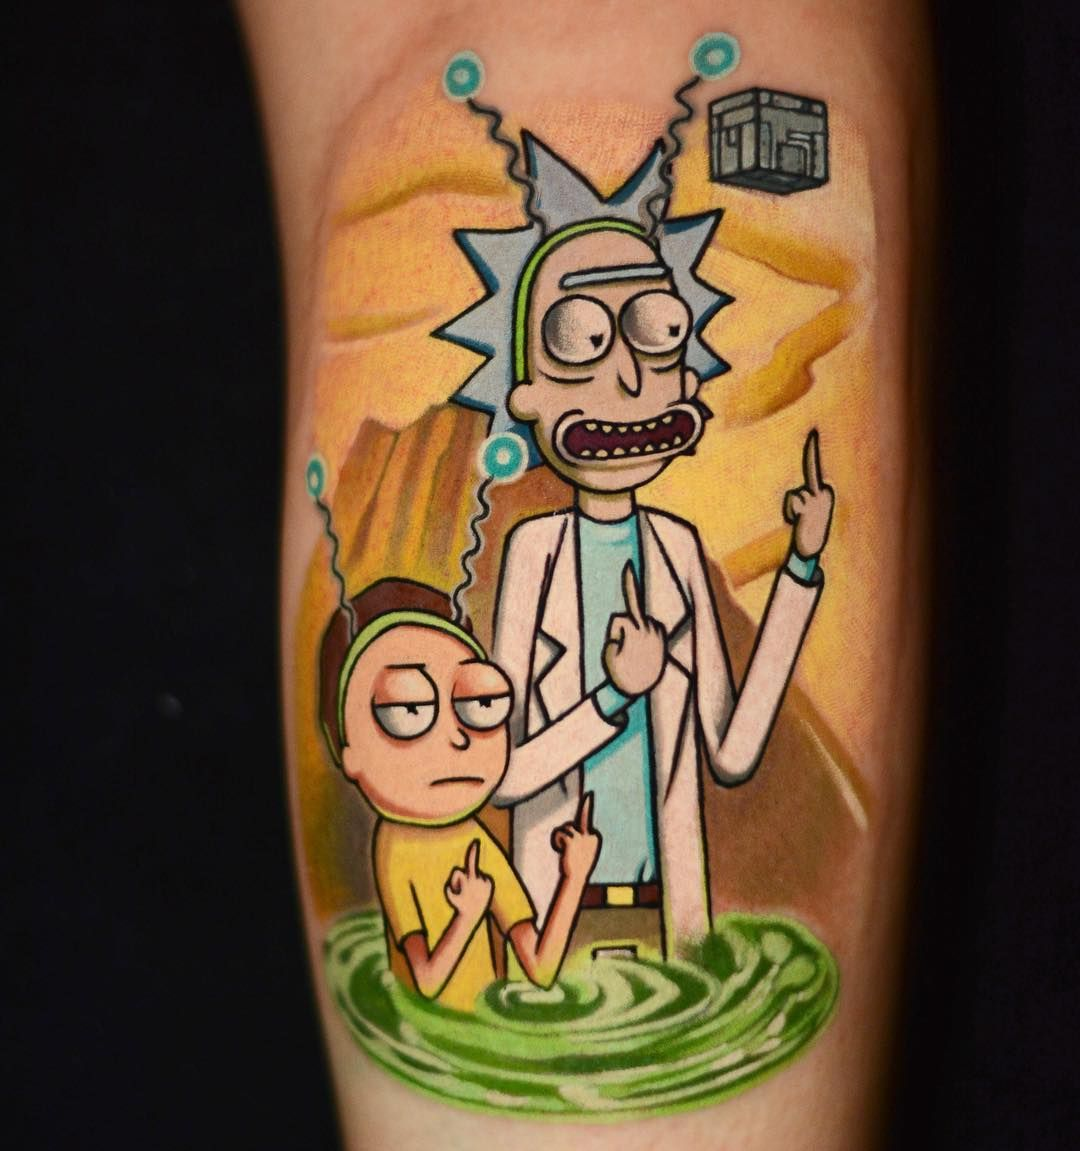 Forum on this topic: 50 Pickle Rick Tattoo Ideas For Men , 50-pickle-rick-tattoo-ideas-for-men/